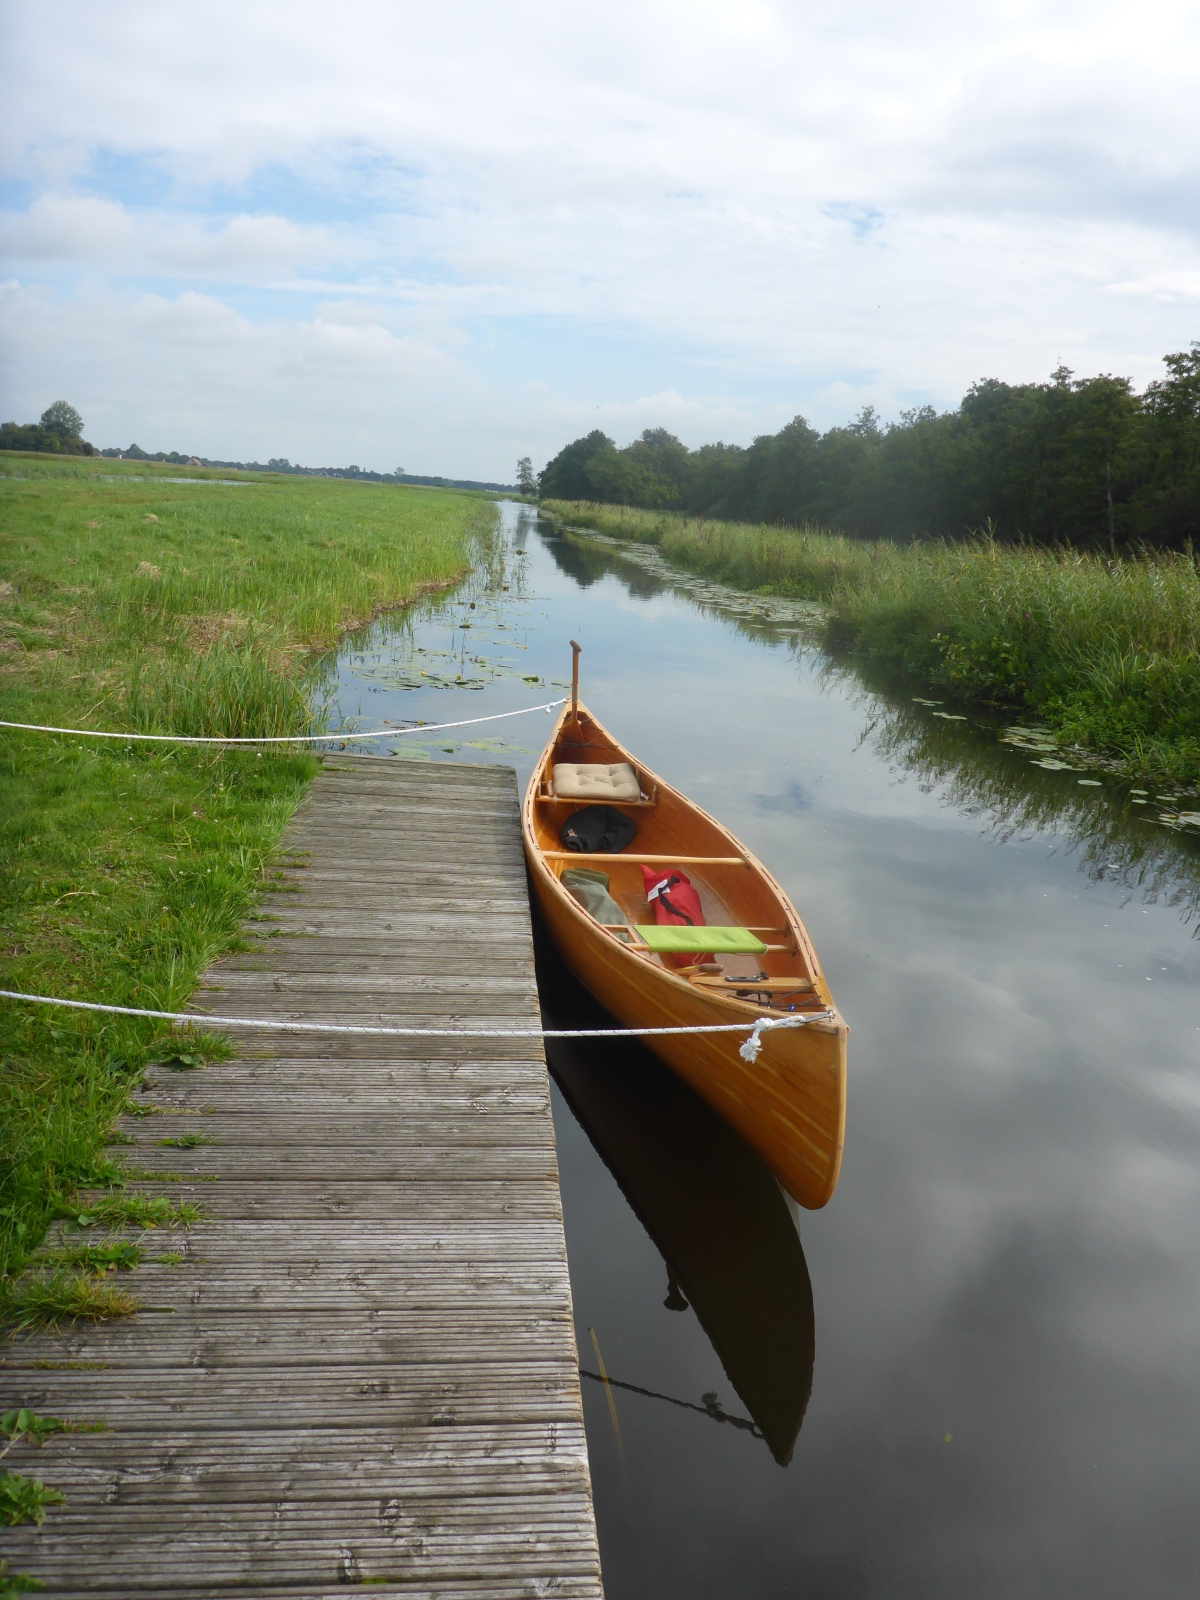 Part of our 10 km paddle through the Weerribben